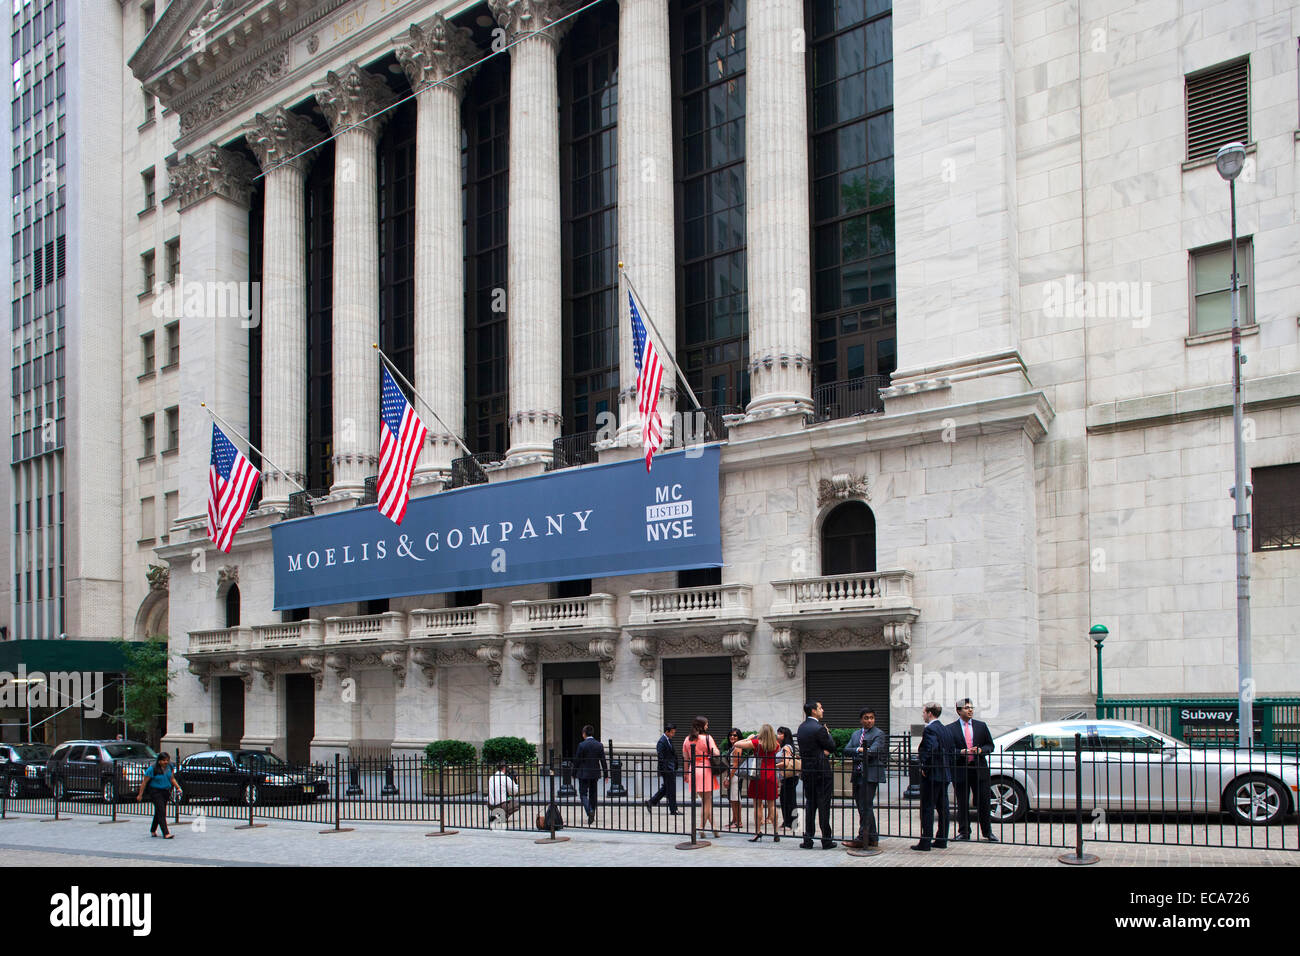 new york stock exchange, wall street, financial district